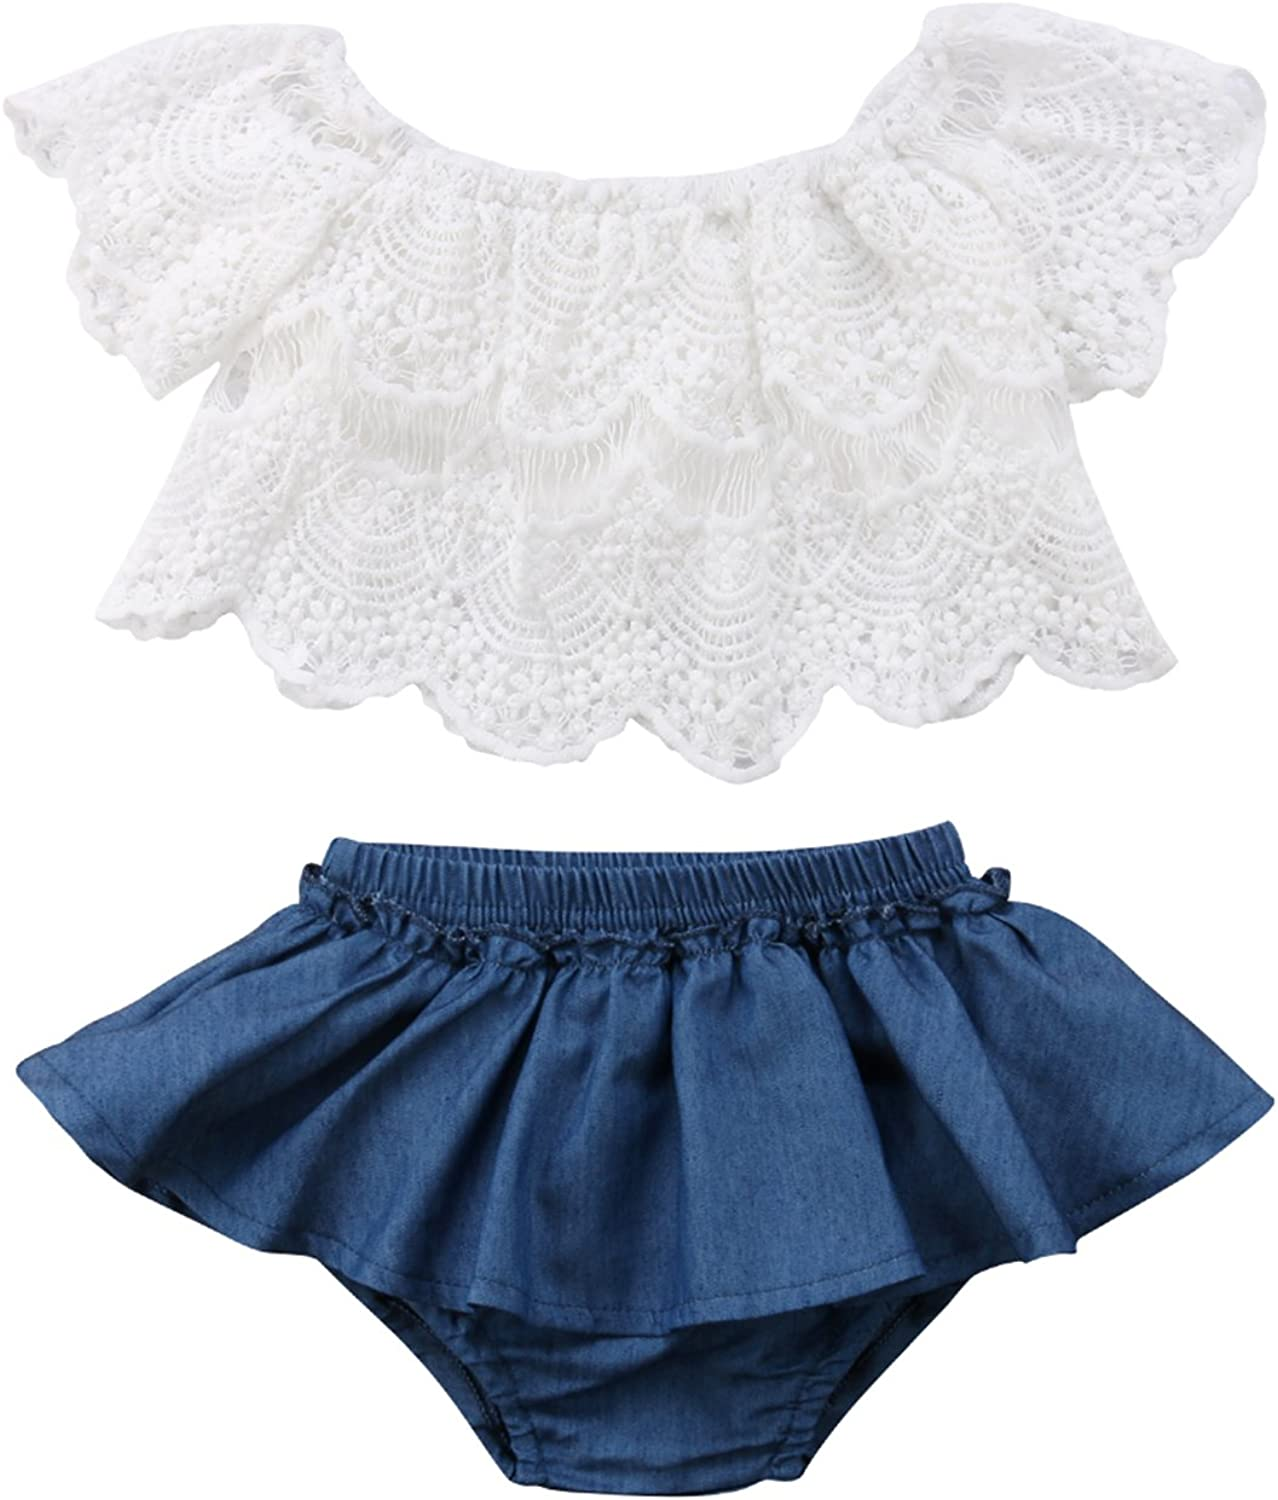 Toddler Newborn Baby Girl 2pcs Outfits Off Shoulder Lace Tops+Denim Shorts Skirt Clothes Set